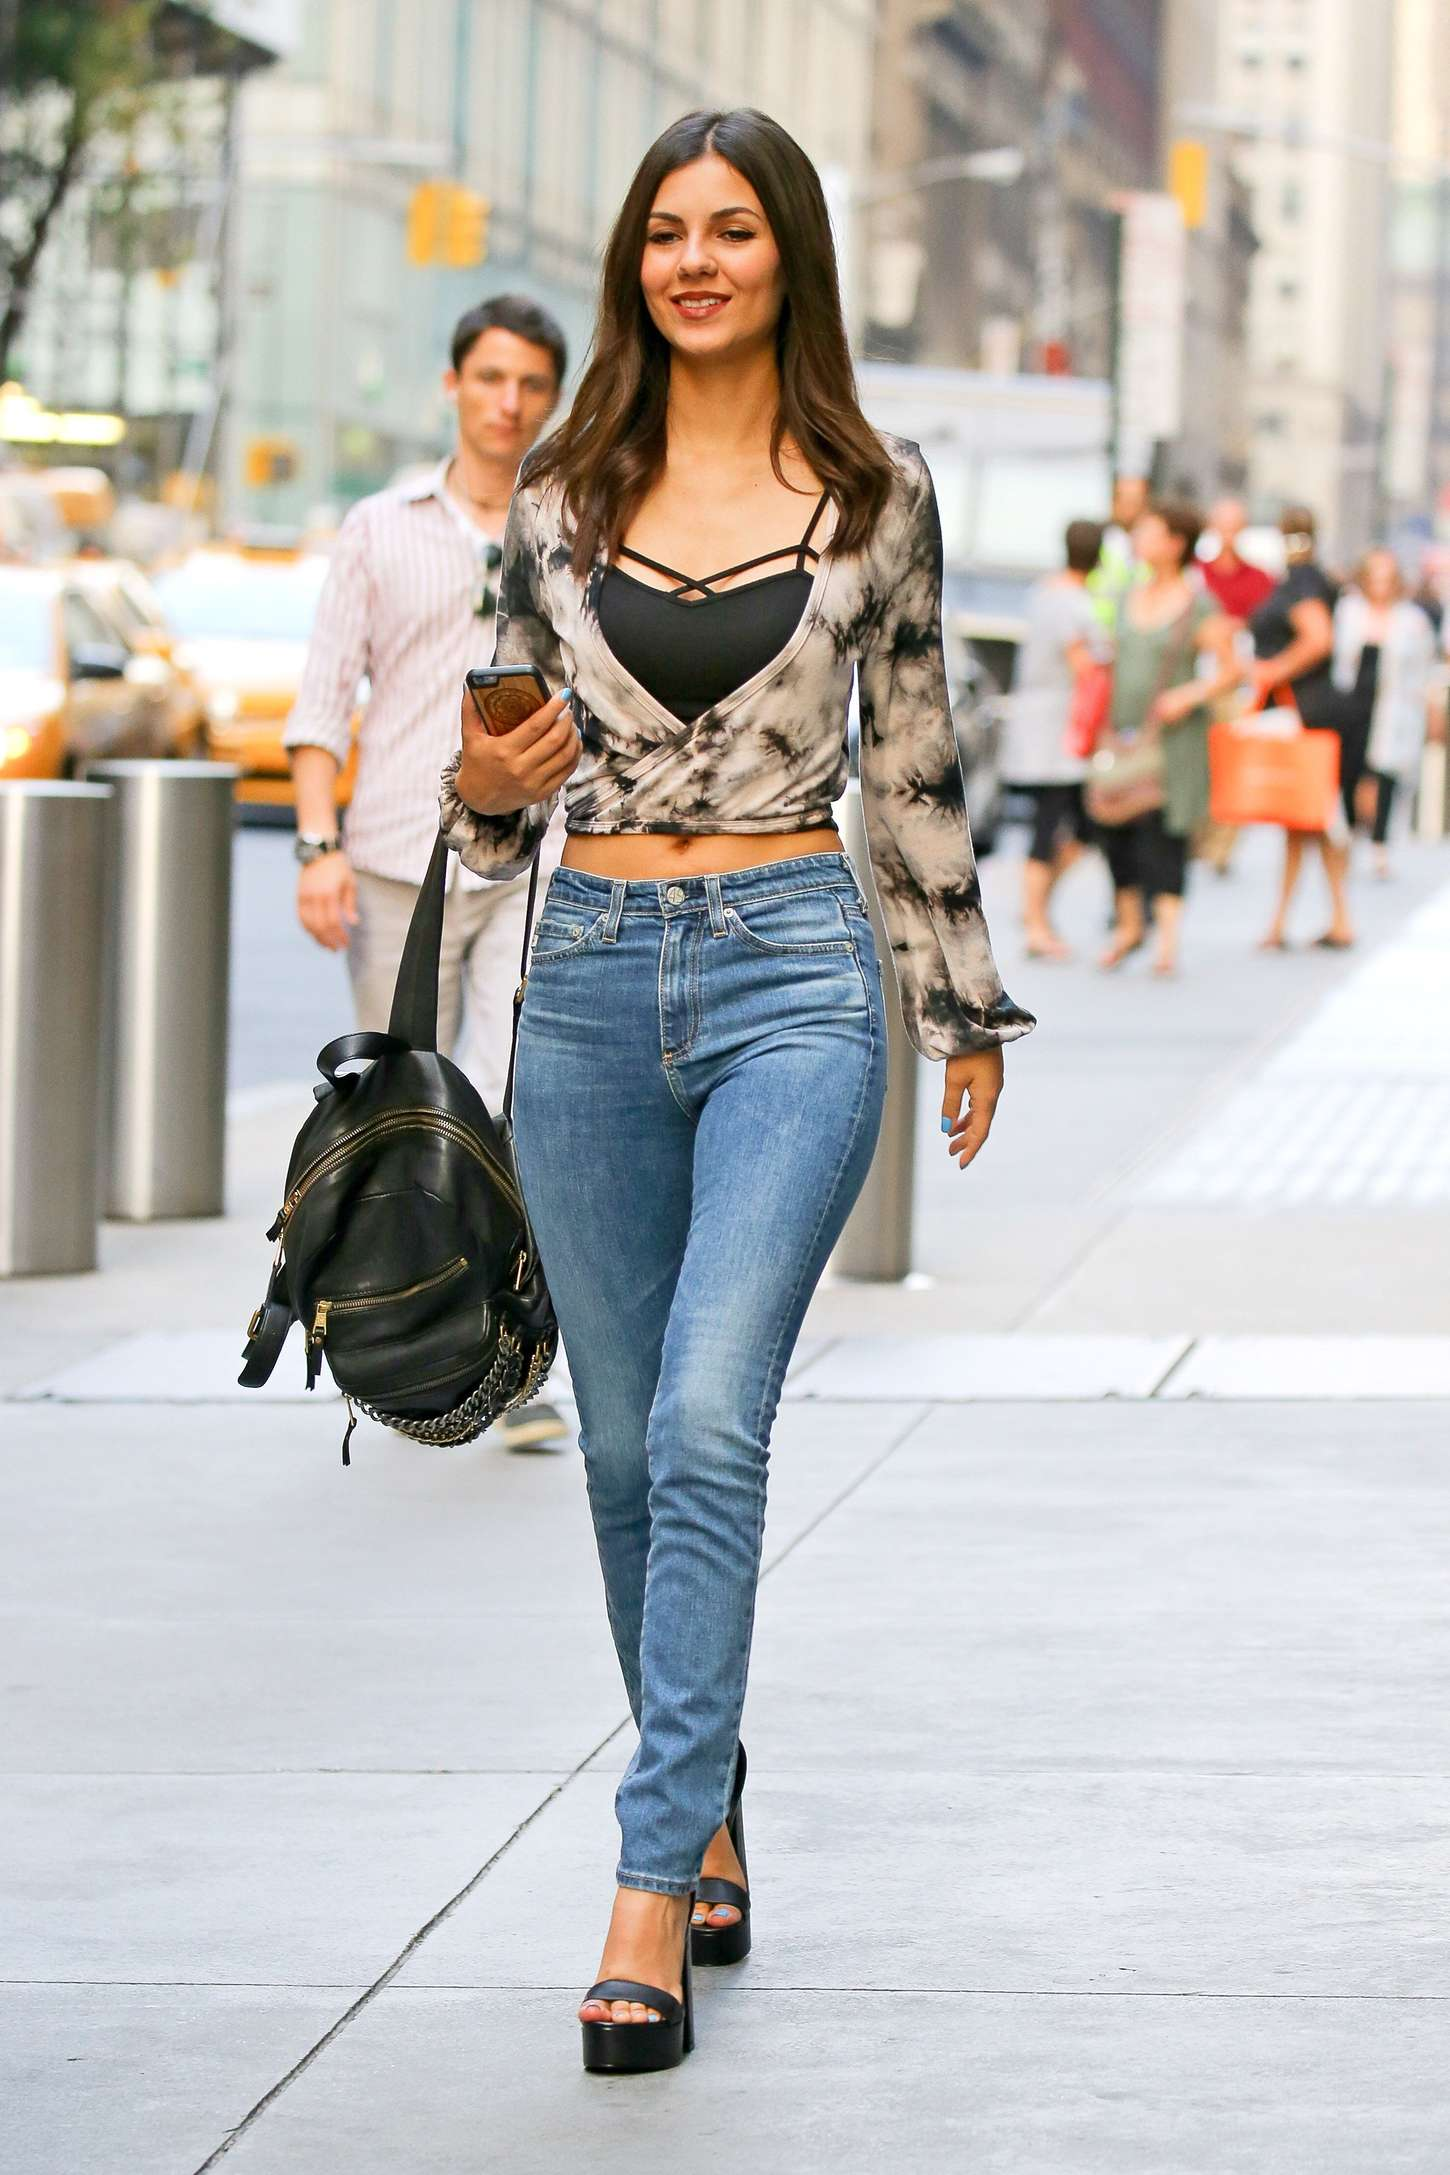 Victoria Justice In Tight Jeans 19 Gotceleb